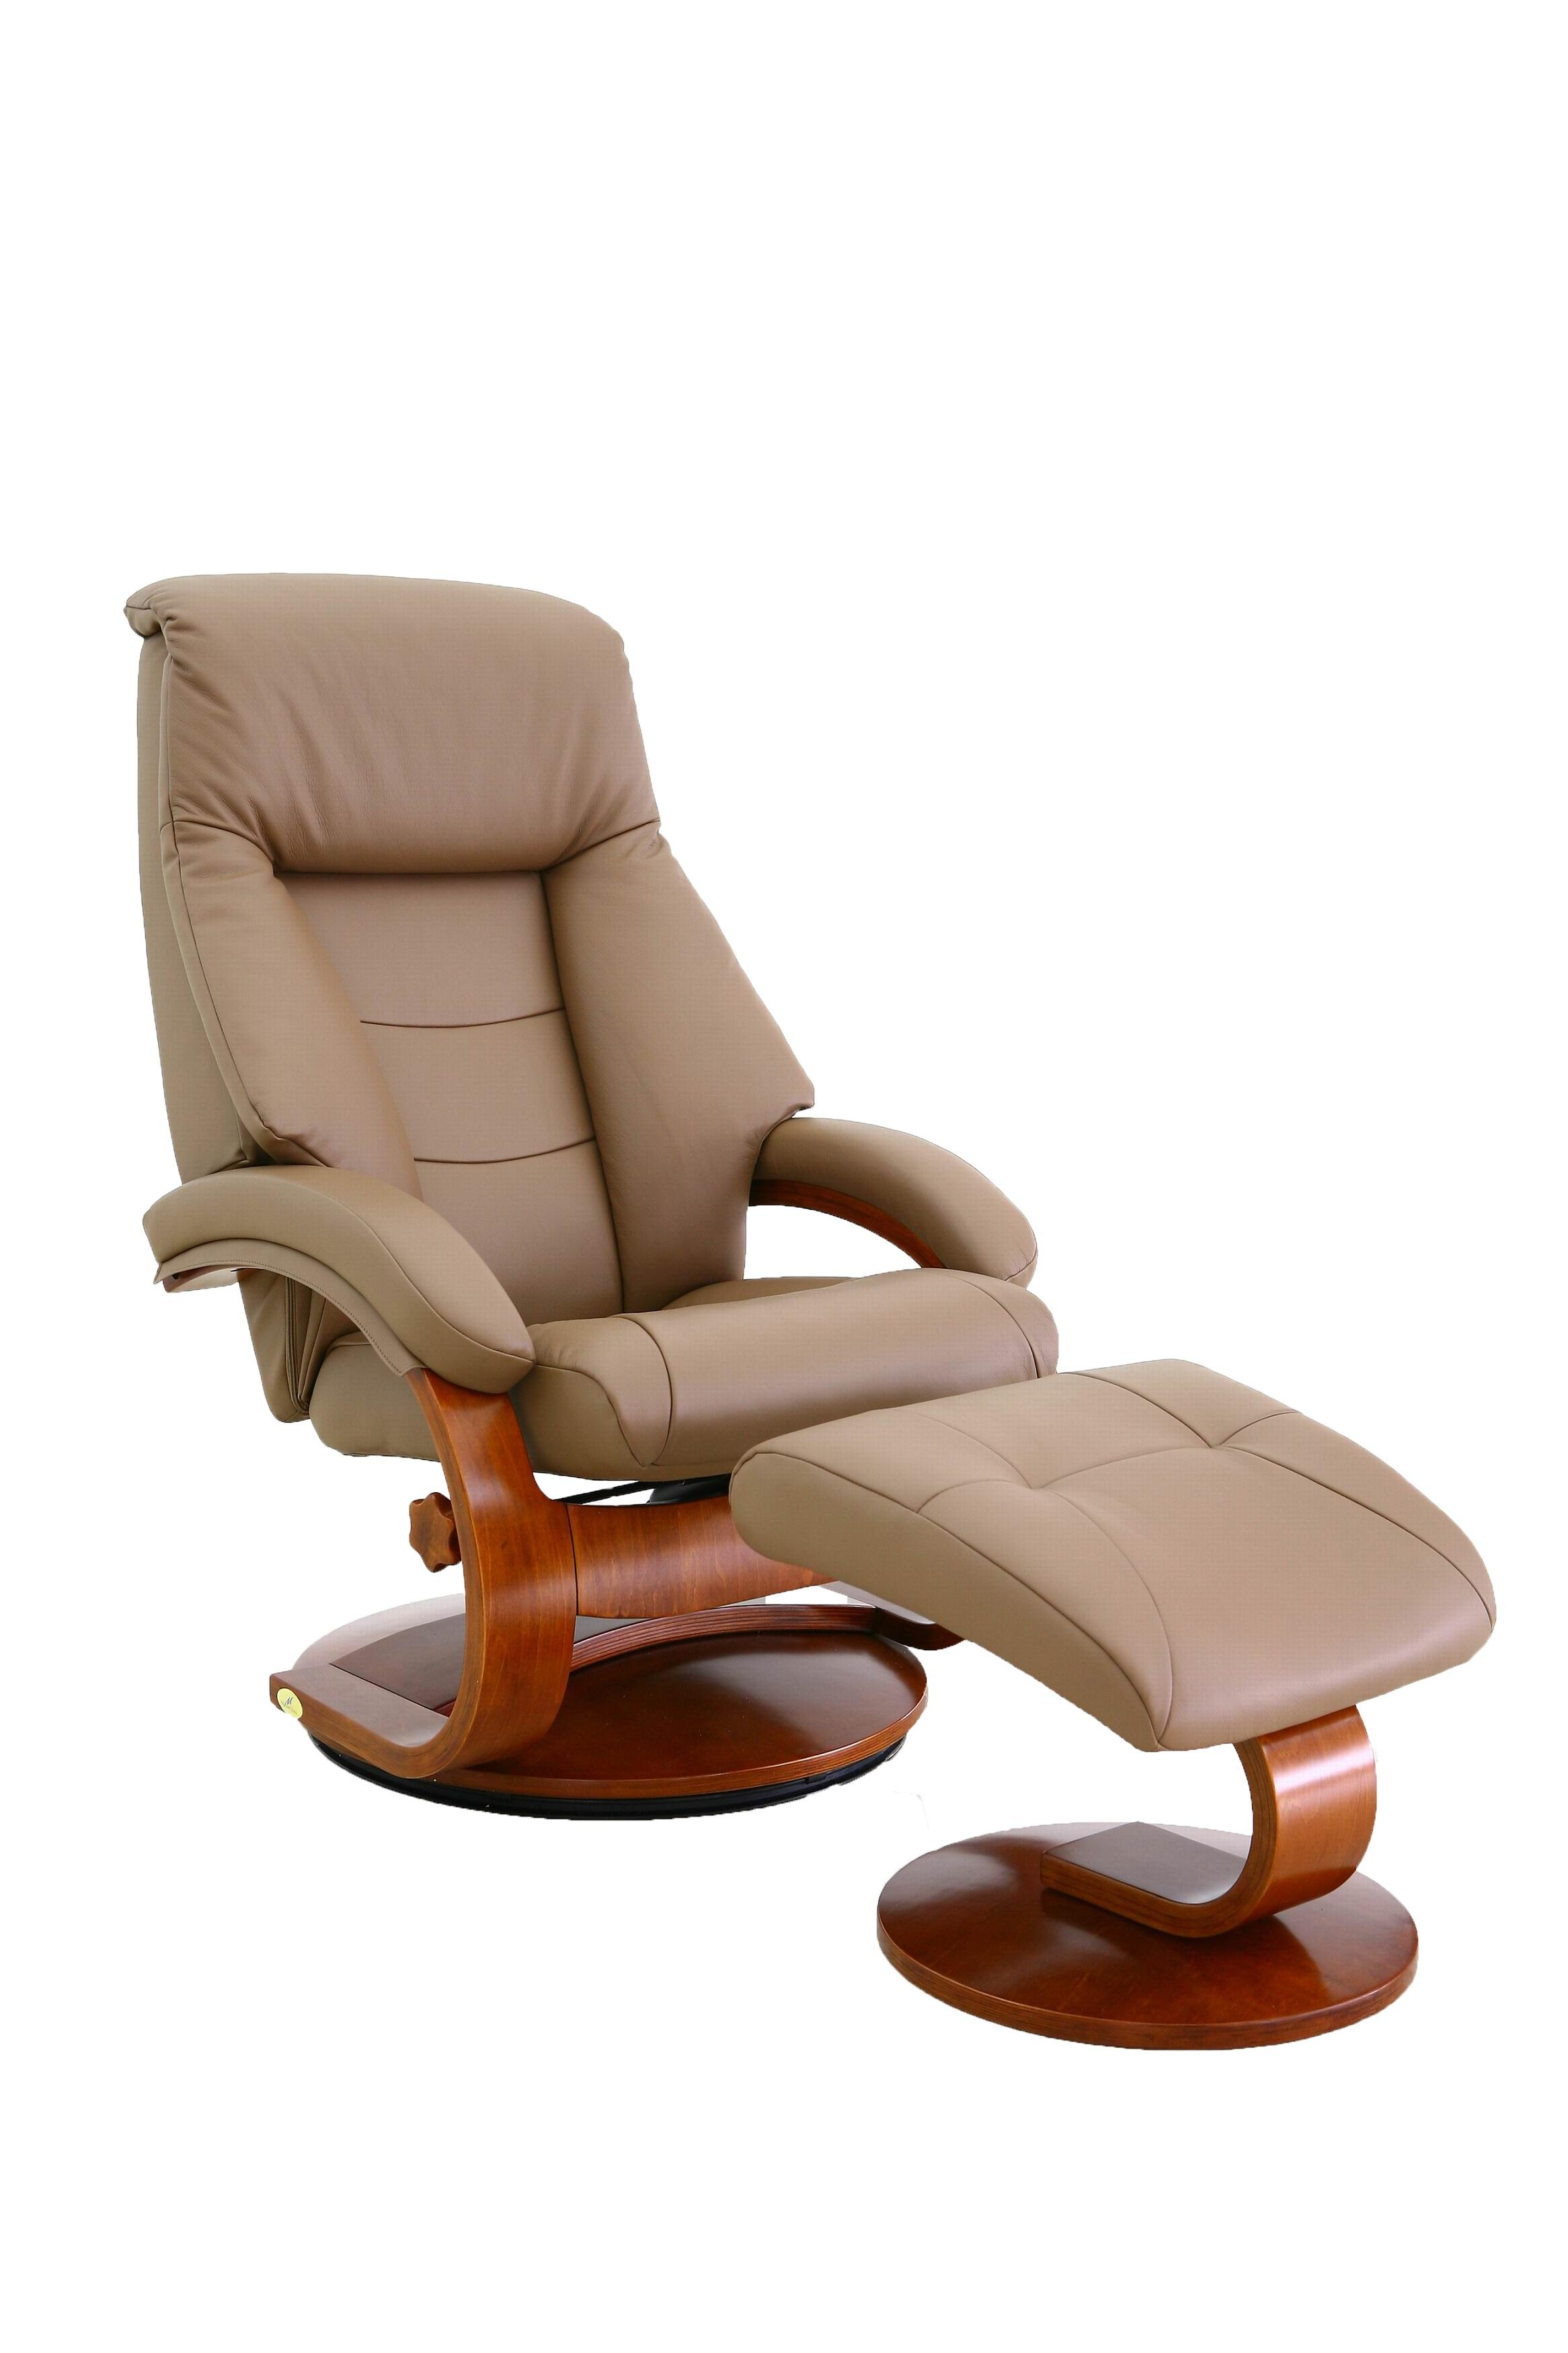 Magnificent Mac Motion Relax R Montreal Sand Tan Leather Recliner And Ottoman Set Pdpeps Interior Chair Design Pdpepsorg